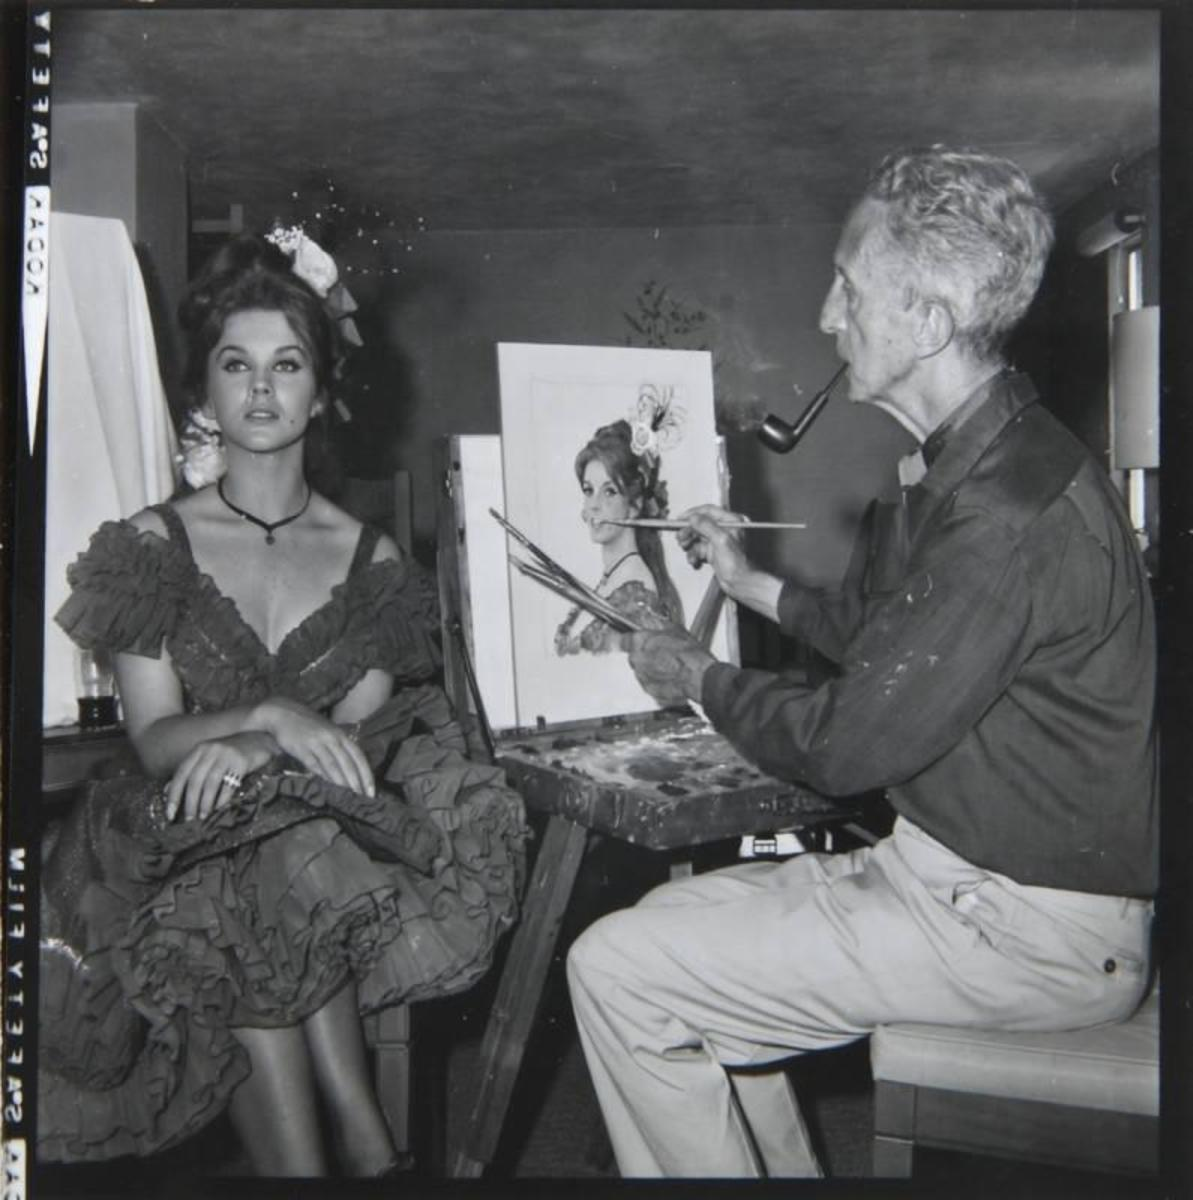 Norman Rockwell painting picture of Ann Margaret during filming of movie Stagecoach